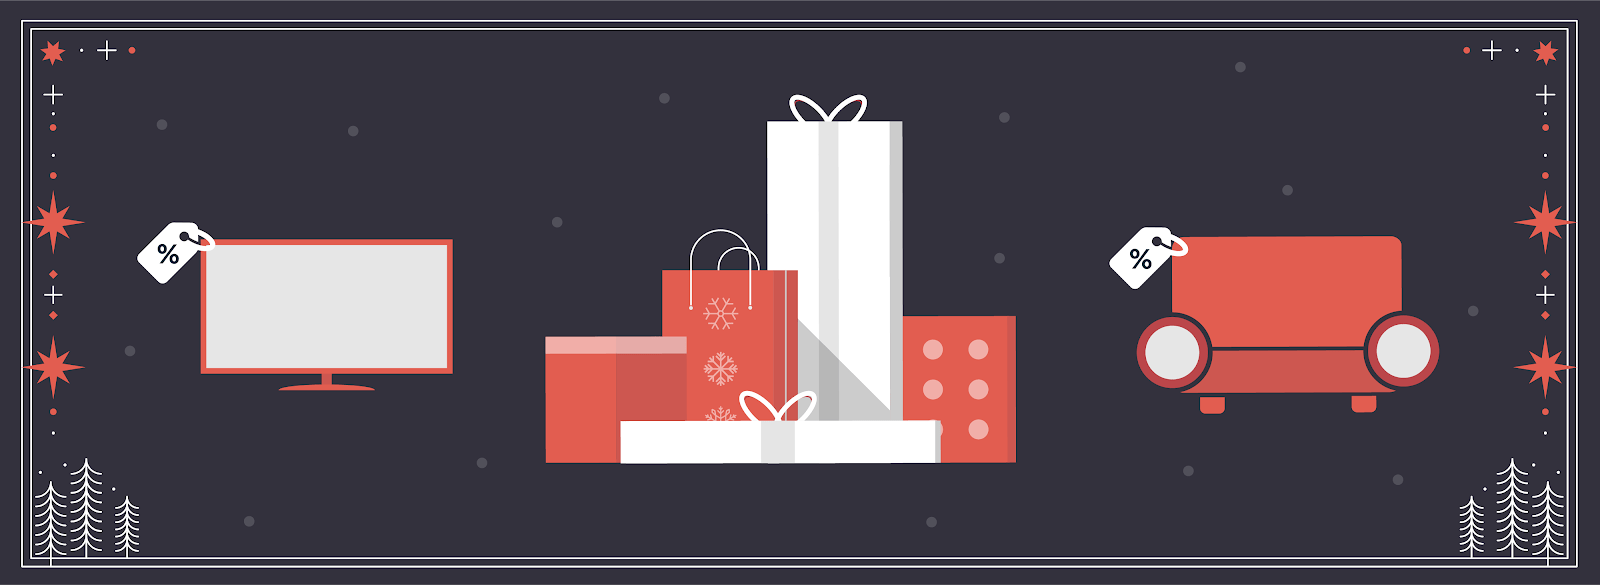 Www Black Friday Black Friday Ecommerce In 2019 Marketing Ideas The History